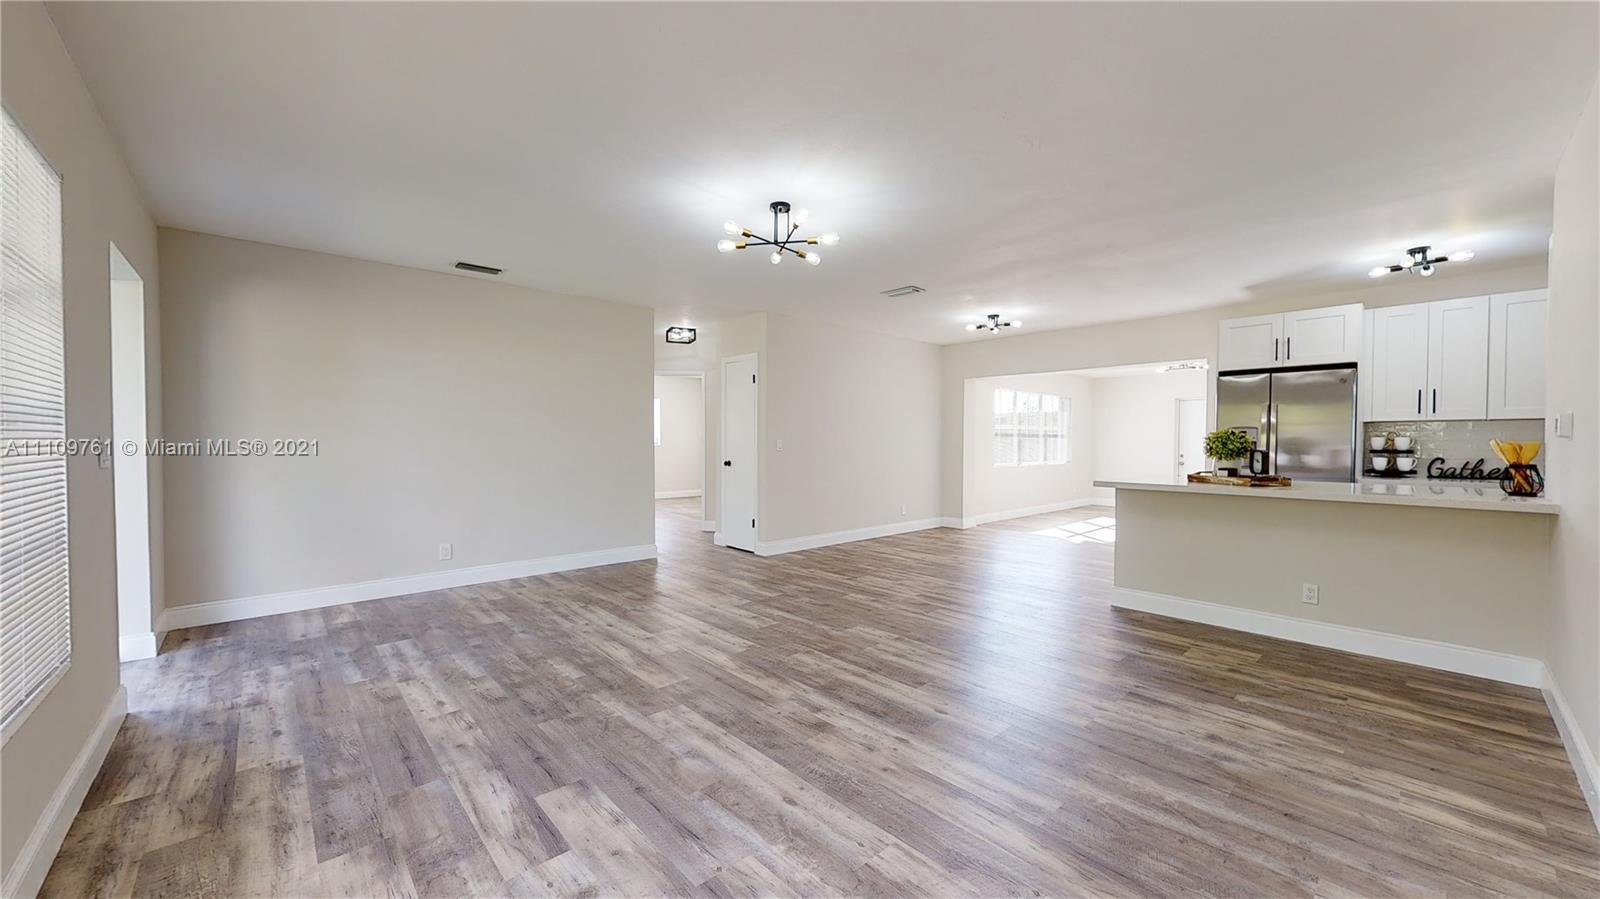 If you like the pictures of this beautiful home, have your real estate agent book a showing ASAP! It